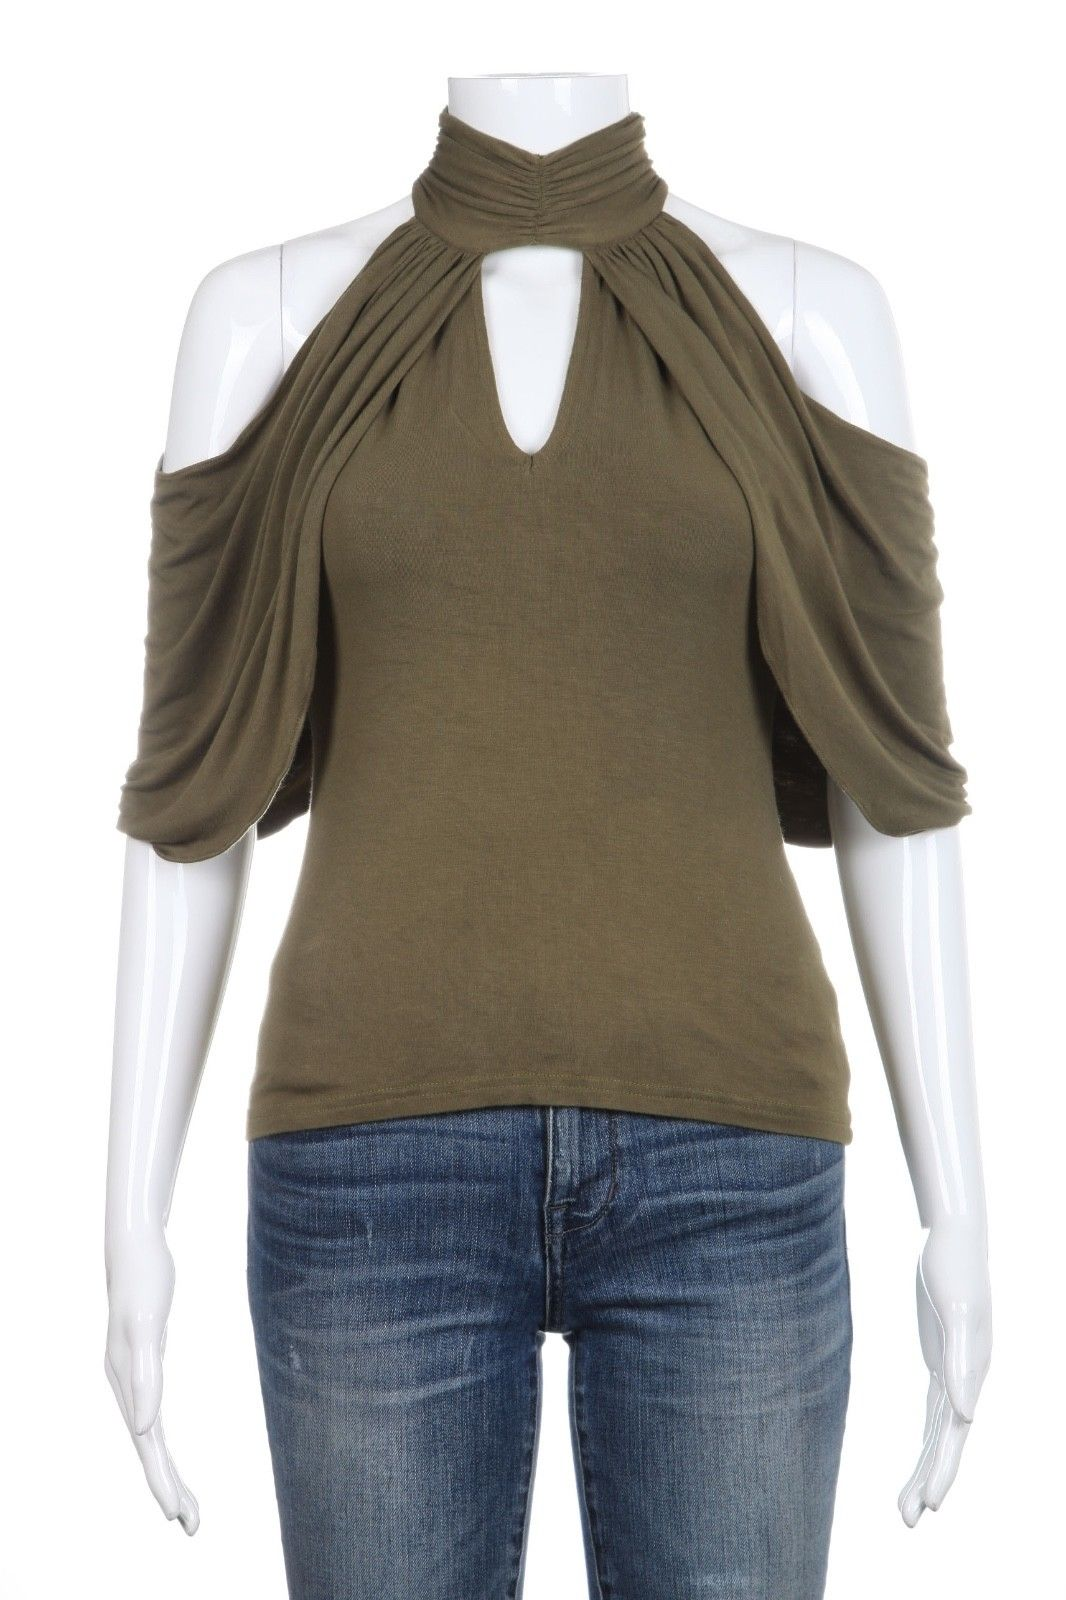 ABI FERRIN Green Draped Cold Shoulder Top Size XS